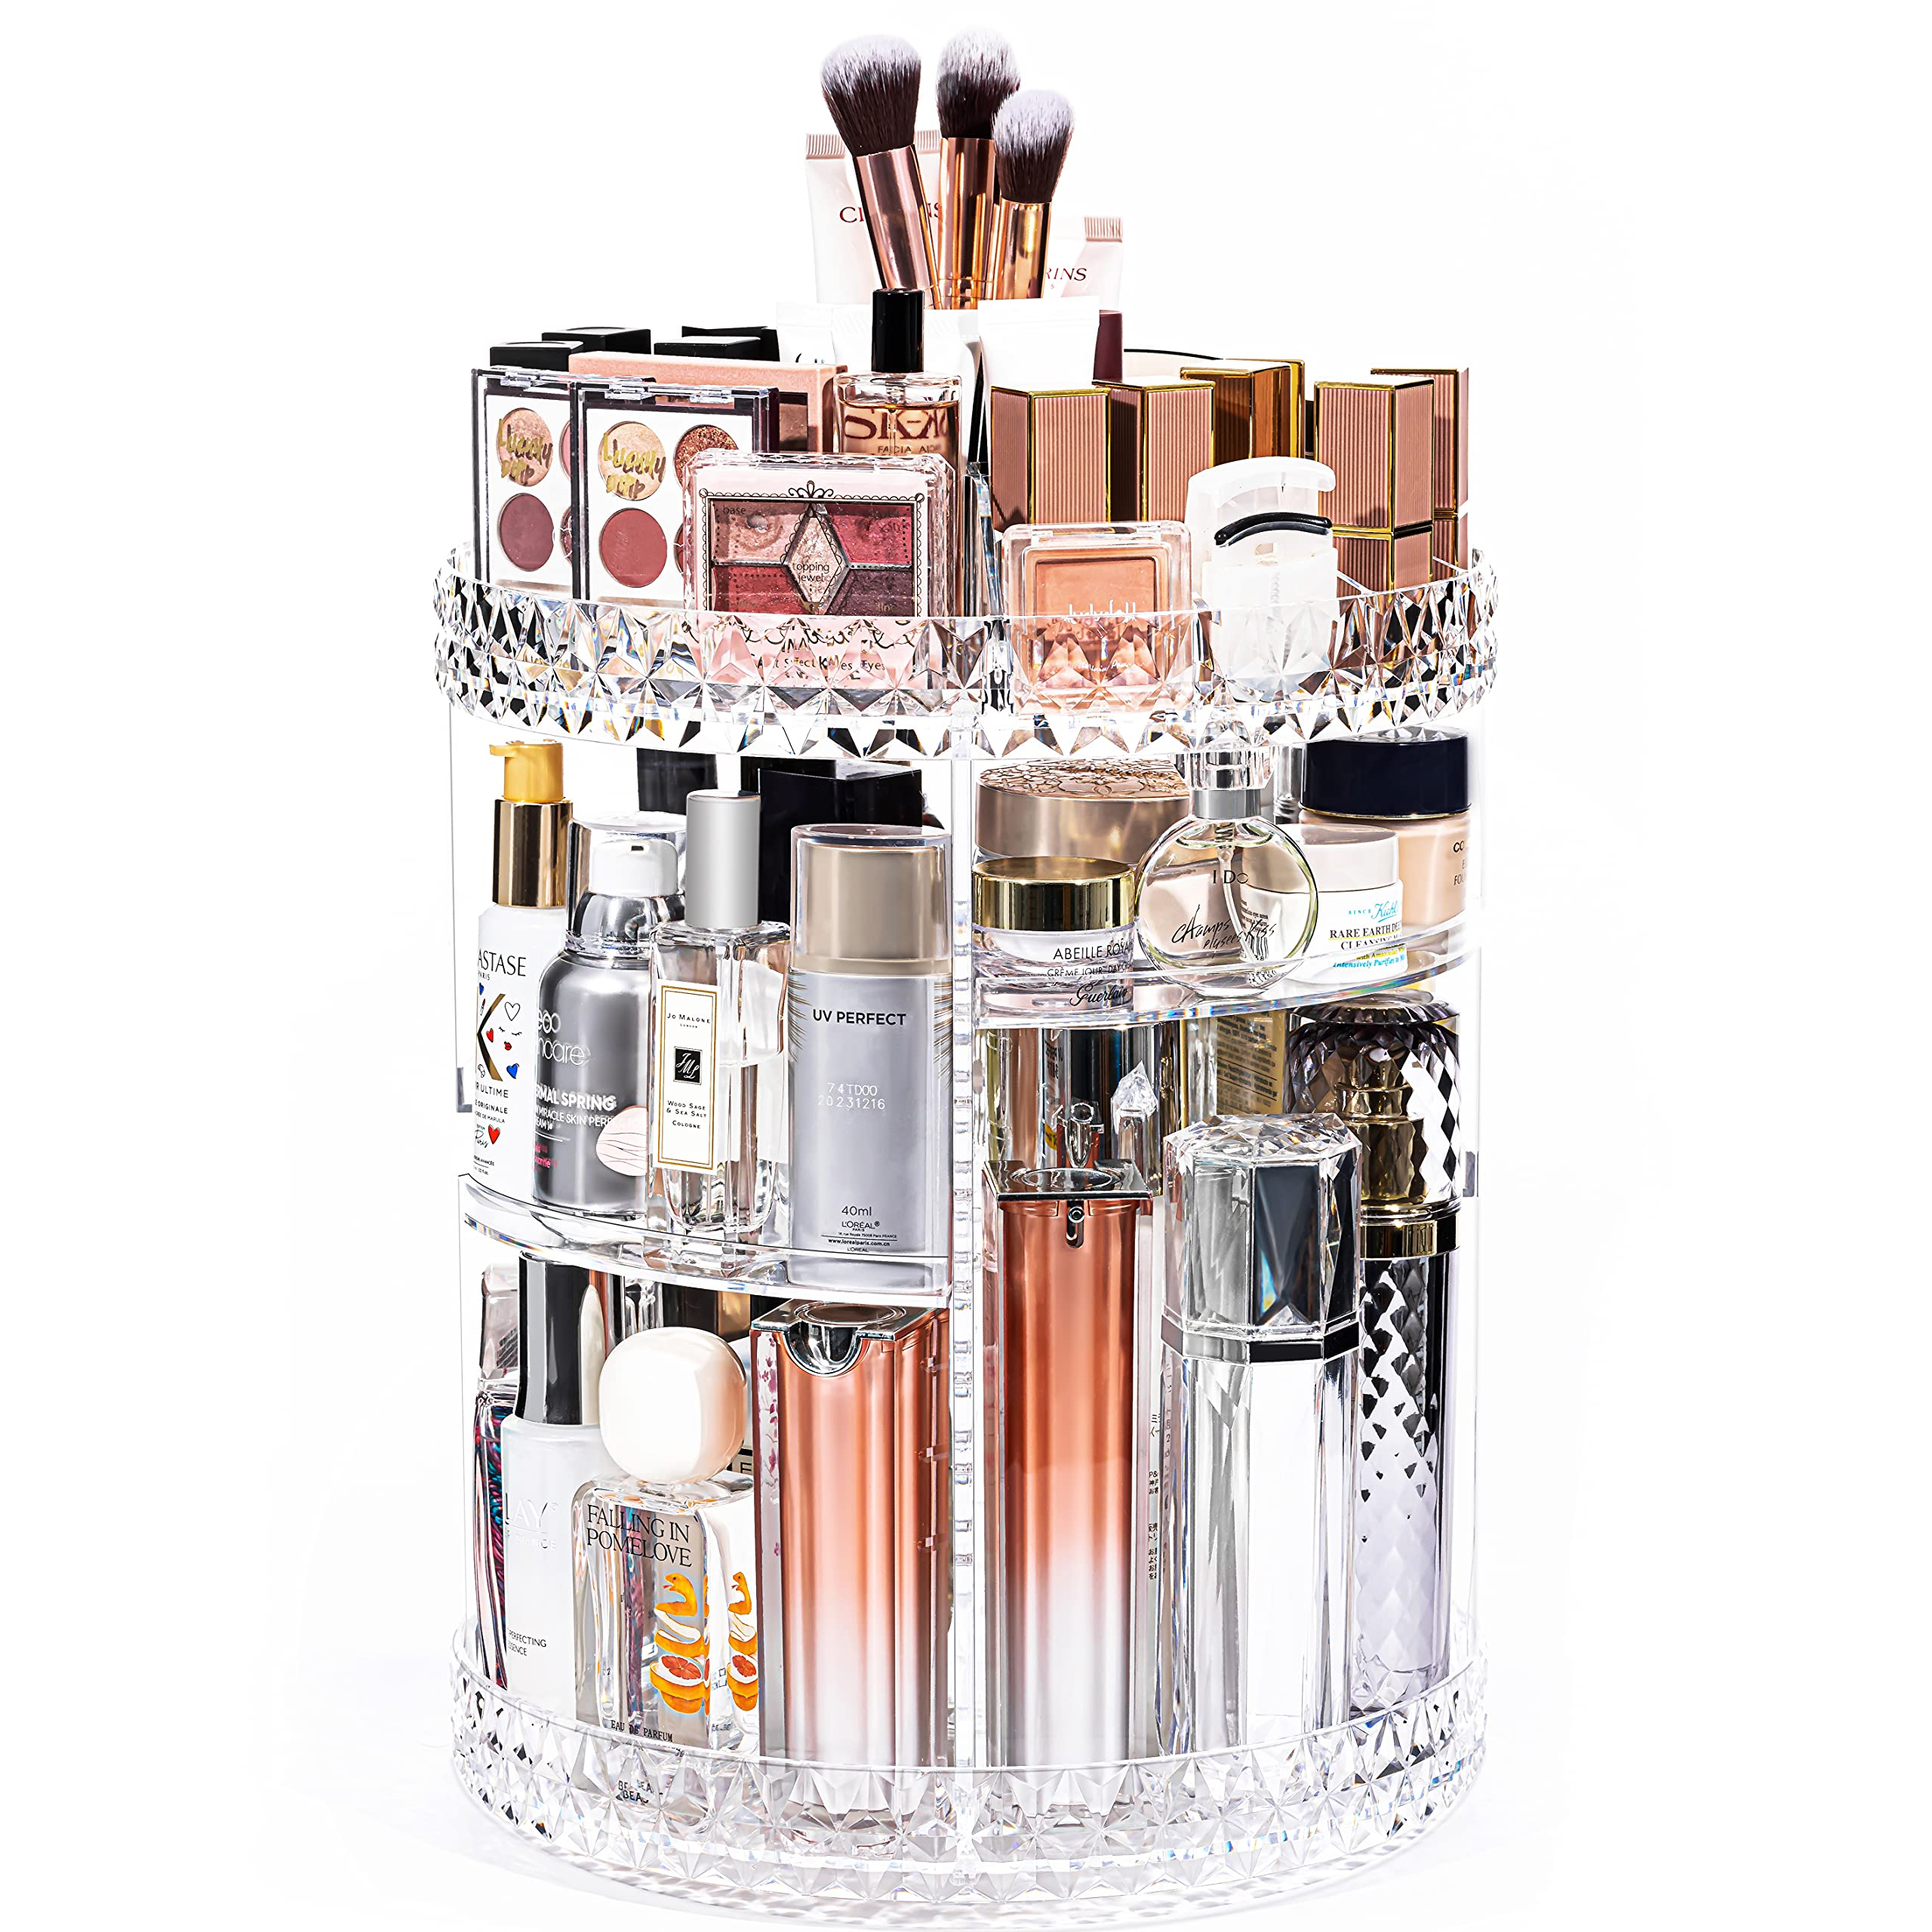 DreamGenius Makeup Organizer, 360 Degree Rotating Cosmetic Storage Organizer, 7-Layer Adjustable Makeup Display Case, Fits Jewelry, Makeup Brushes, Lipsticks, Gift for Wife Women, Clear Acrylic